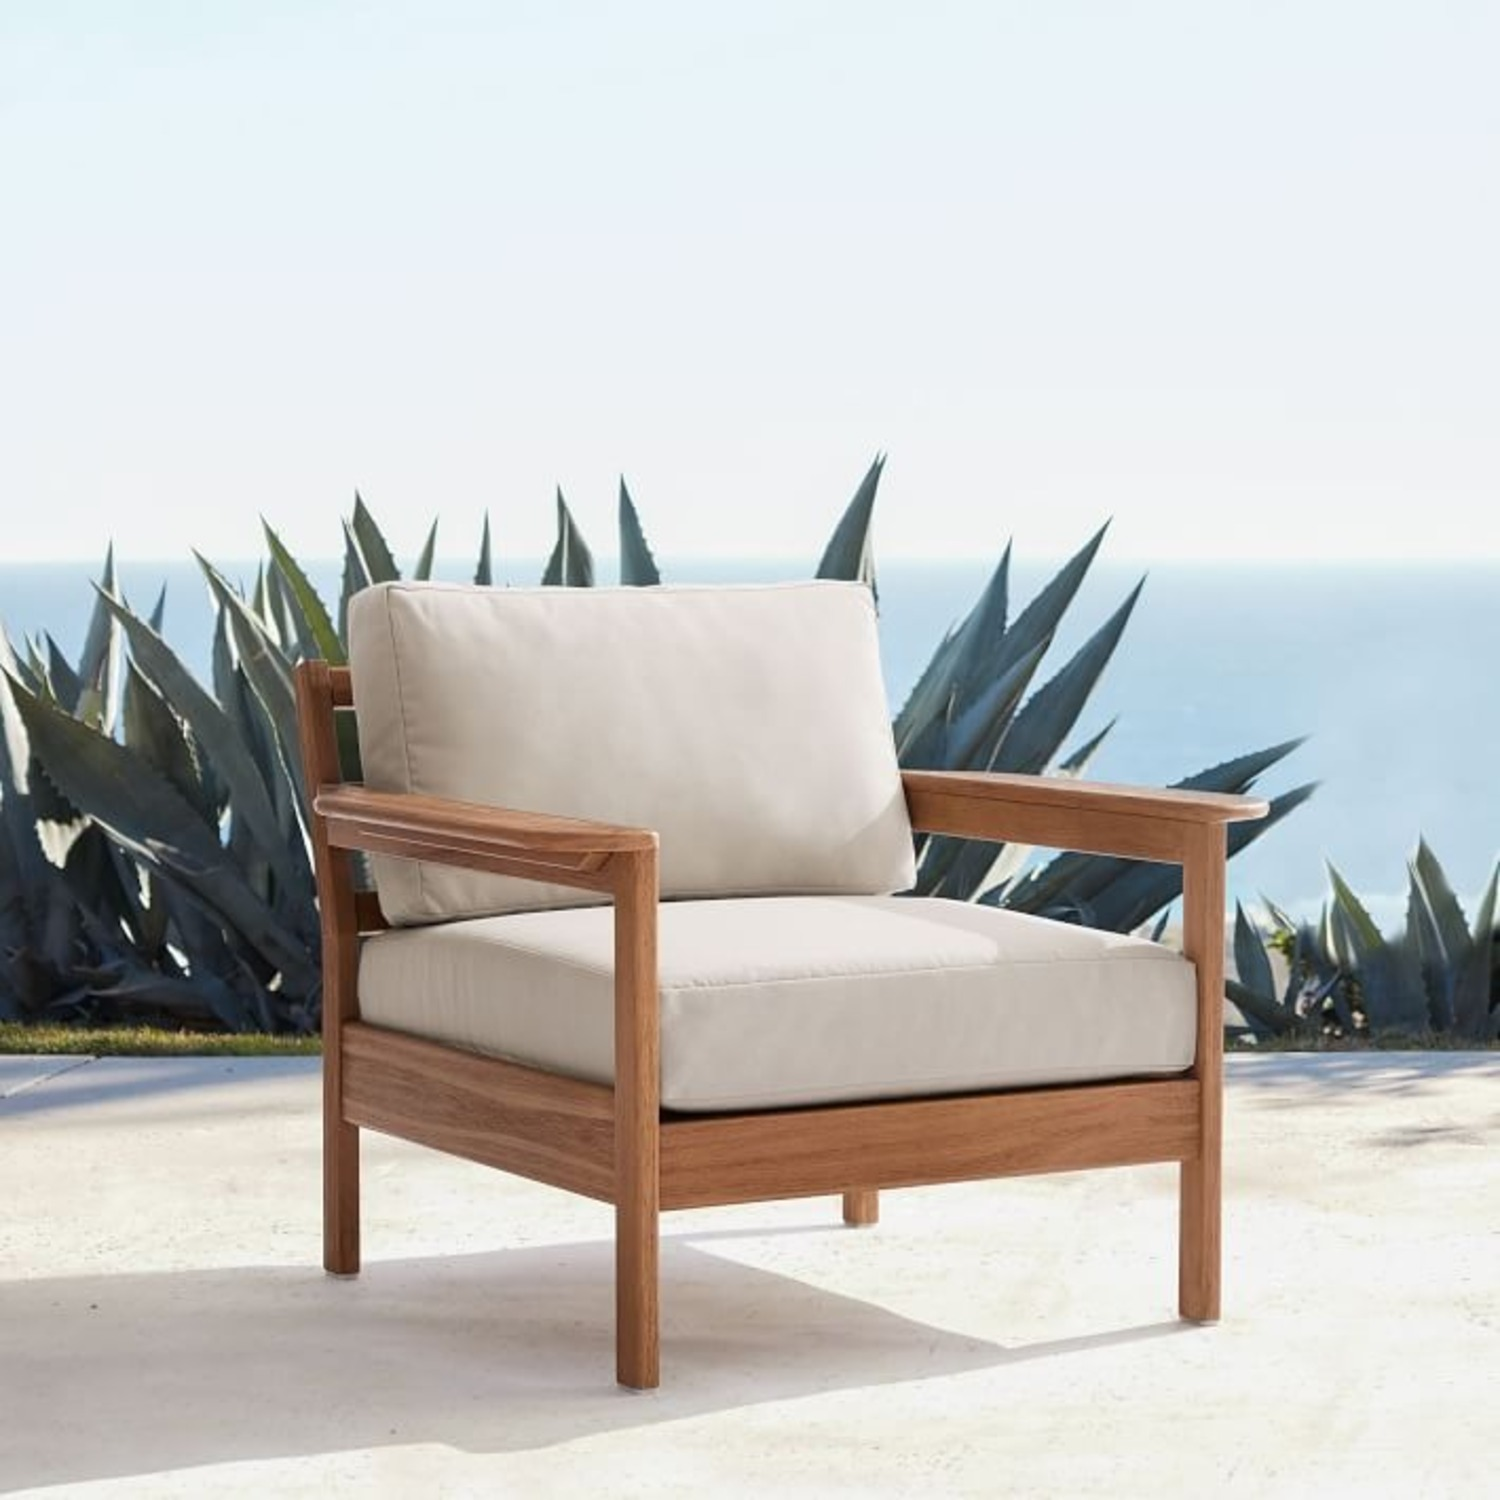 West Elm Playa Outdoor Lounge Chair - image-3